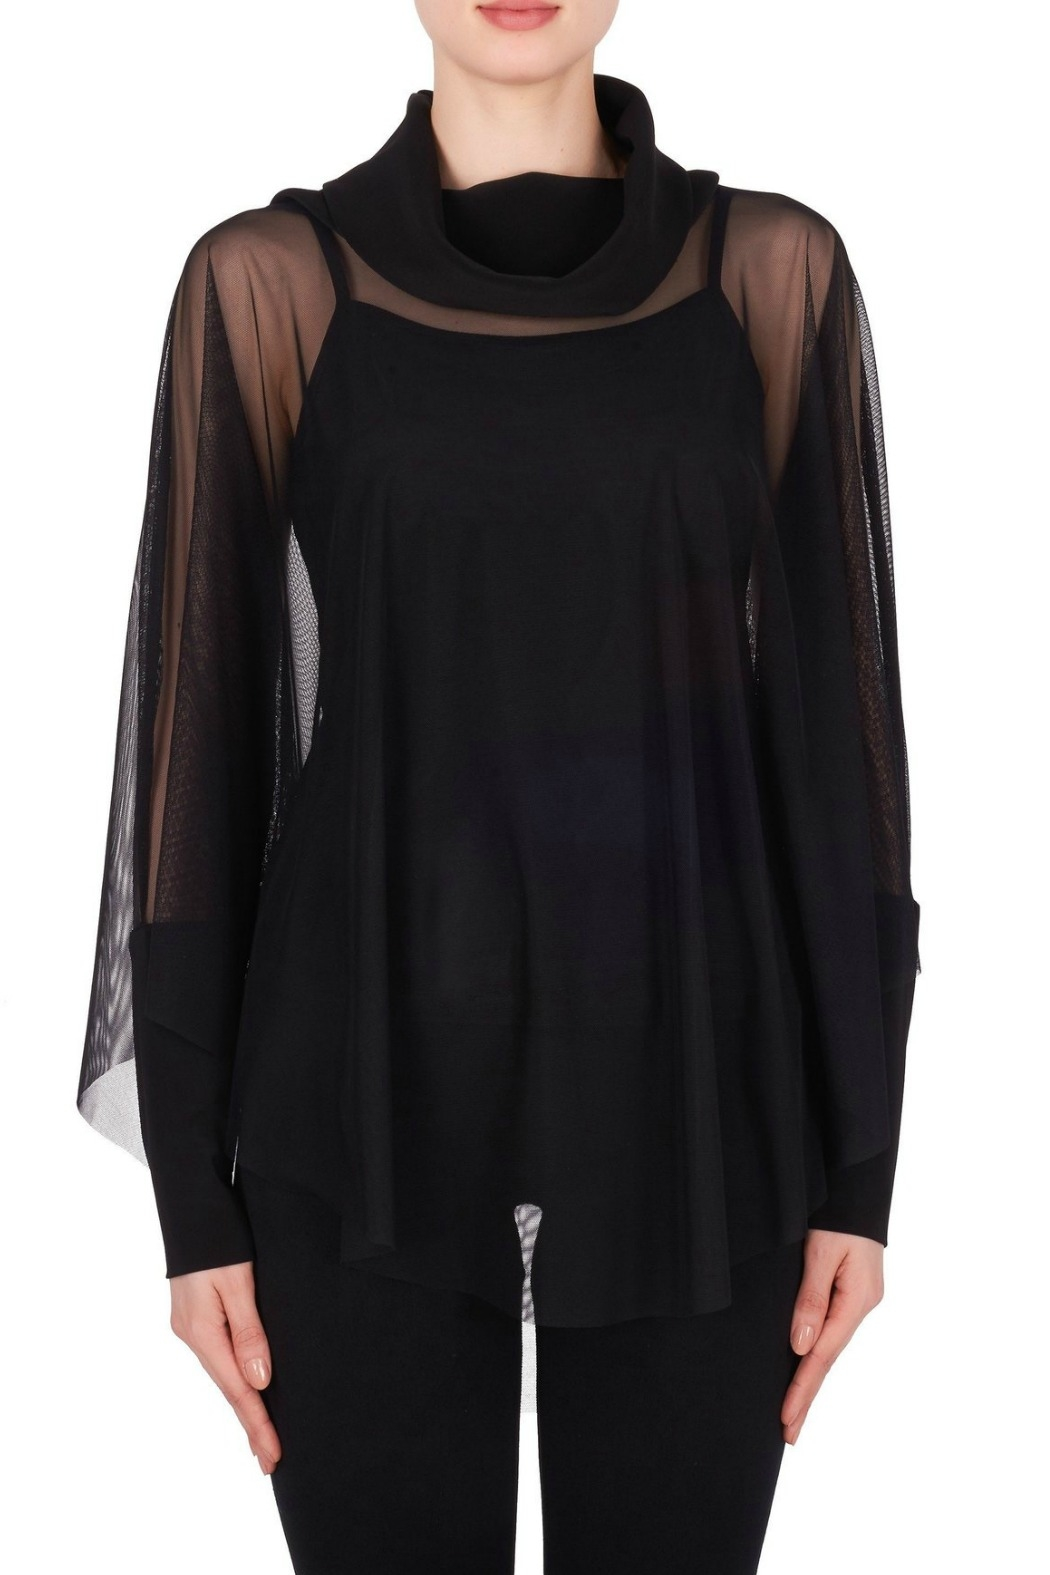 Joseph Ribkoff USA Inc. Black Mesh Overlay Top - Main Image